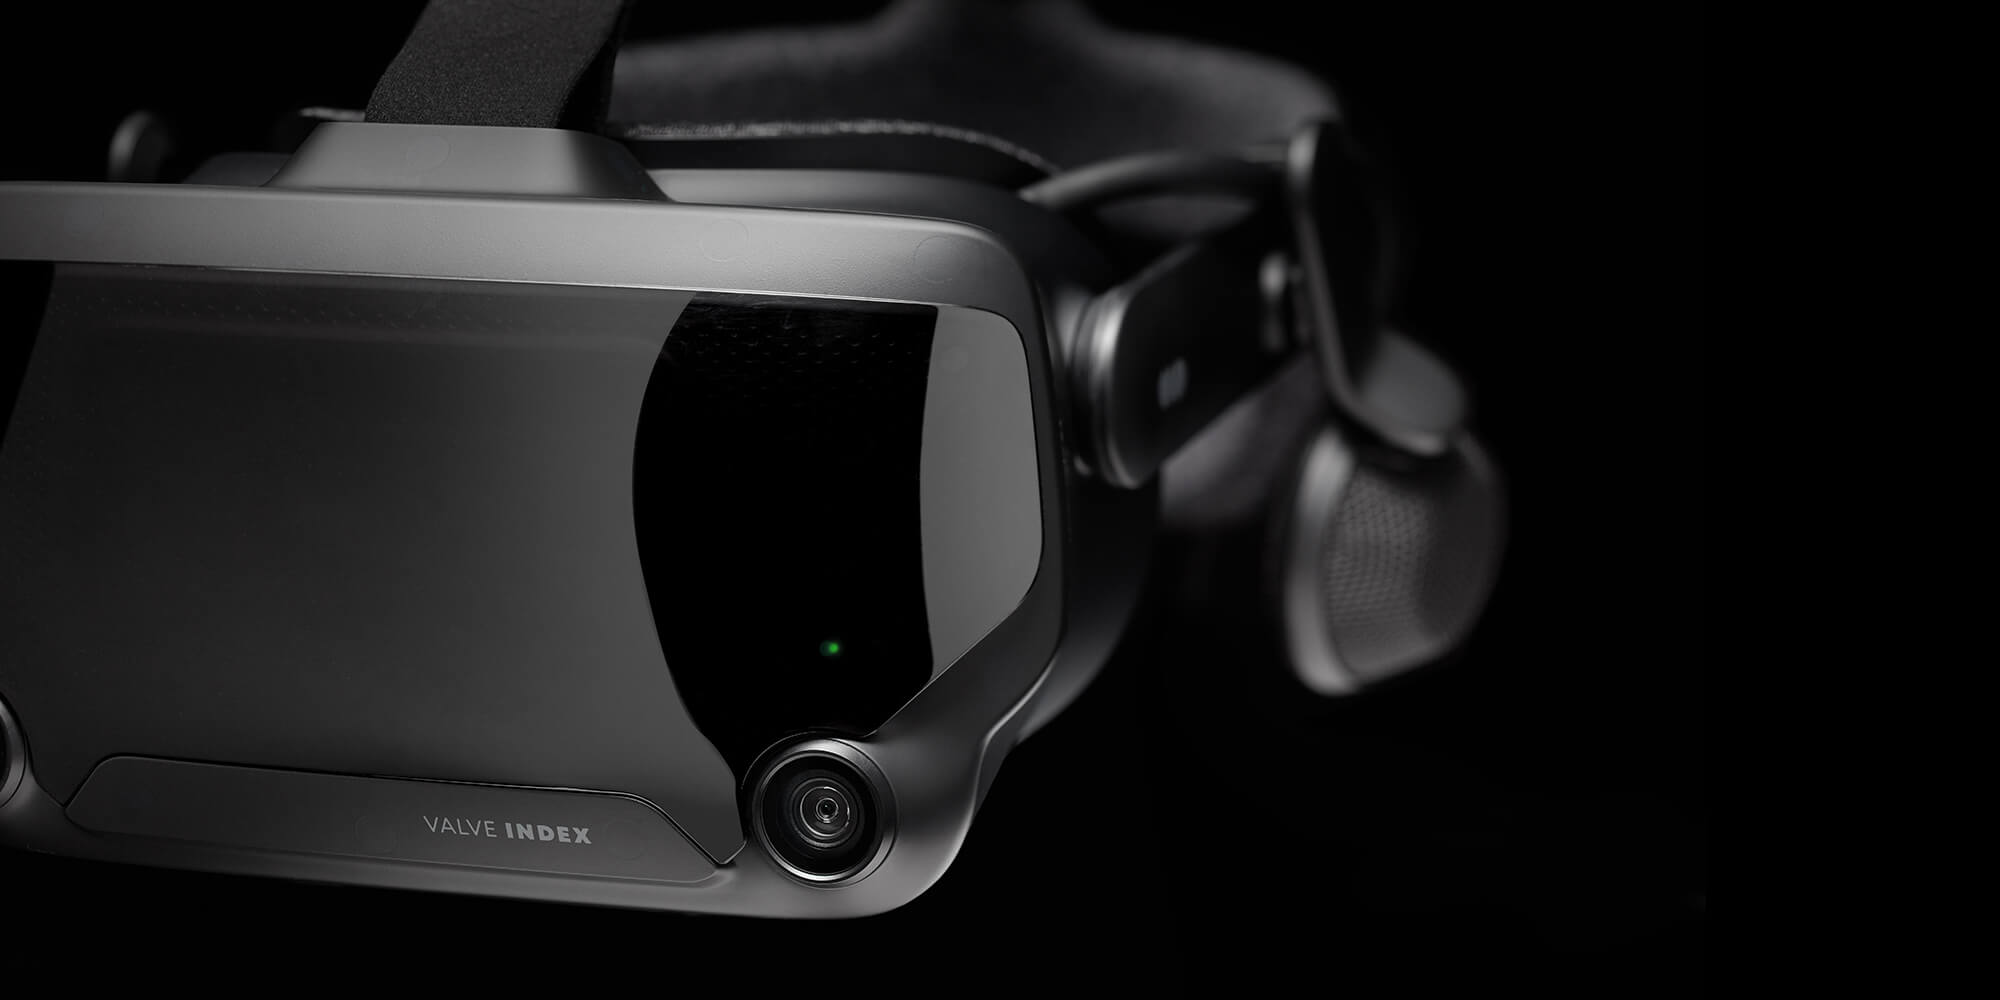 Valve Index VR Headset, Controllers, And Base Revealed; Pre-Orders Open Soon